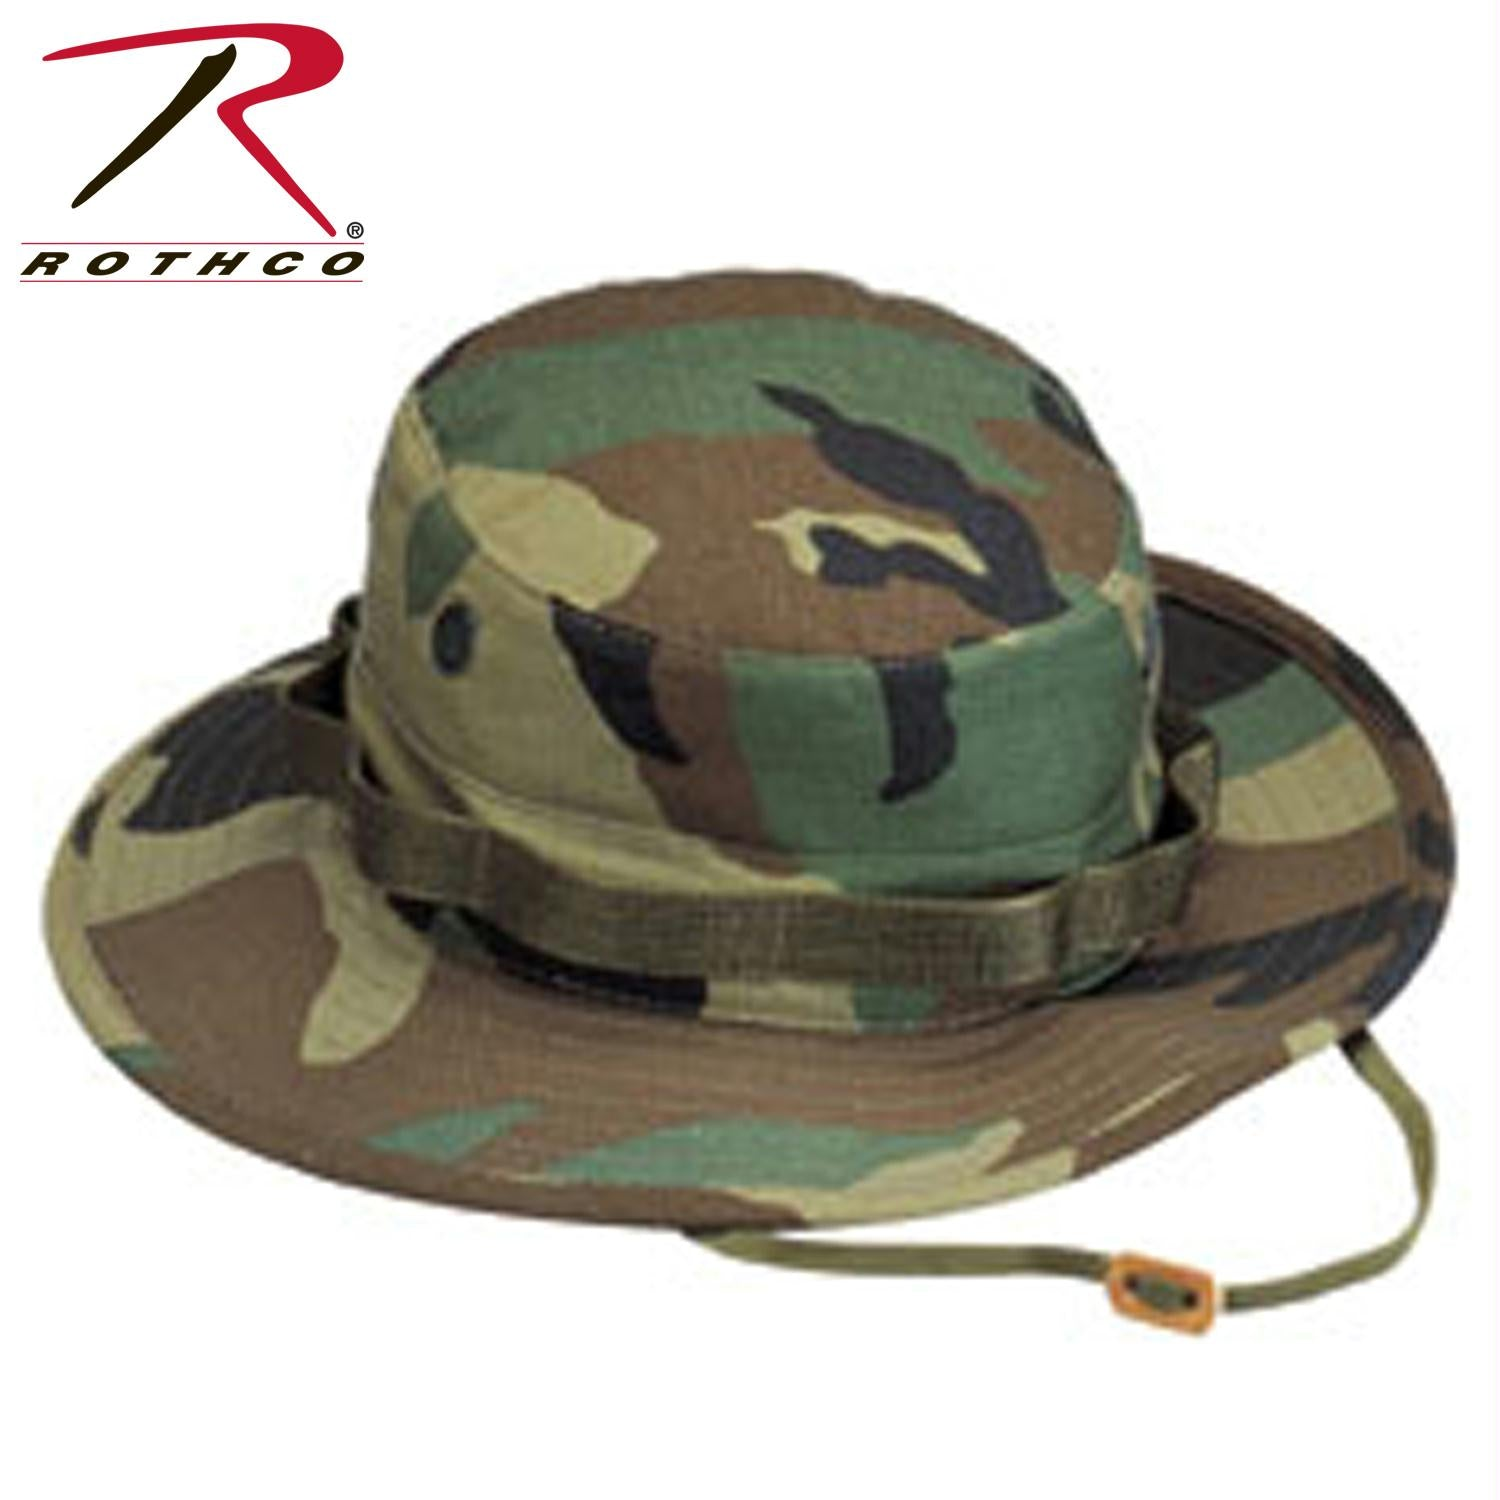 Rothco 100% Cotton Rip-Stop Boonie Hat - Woodland Camo / 7